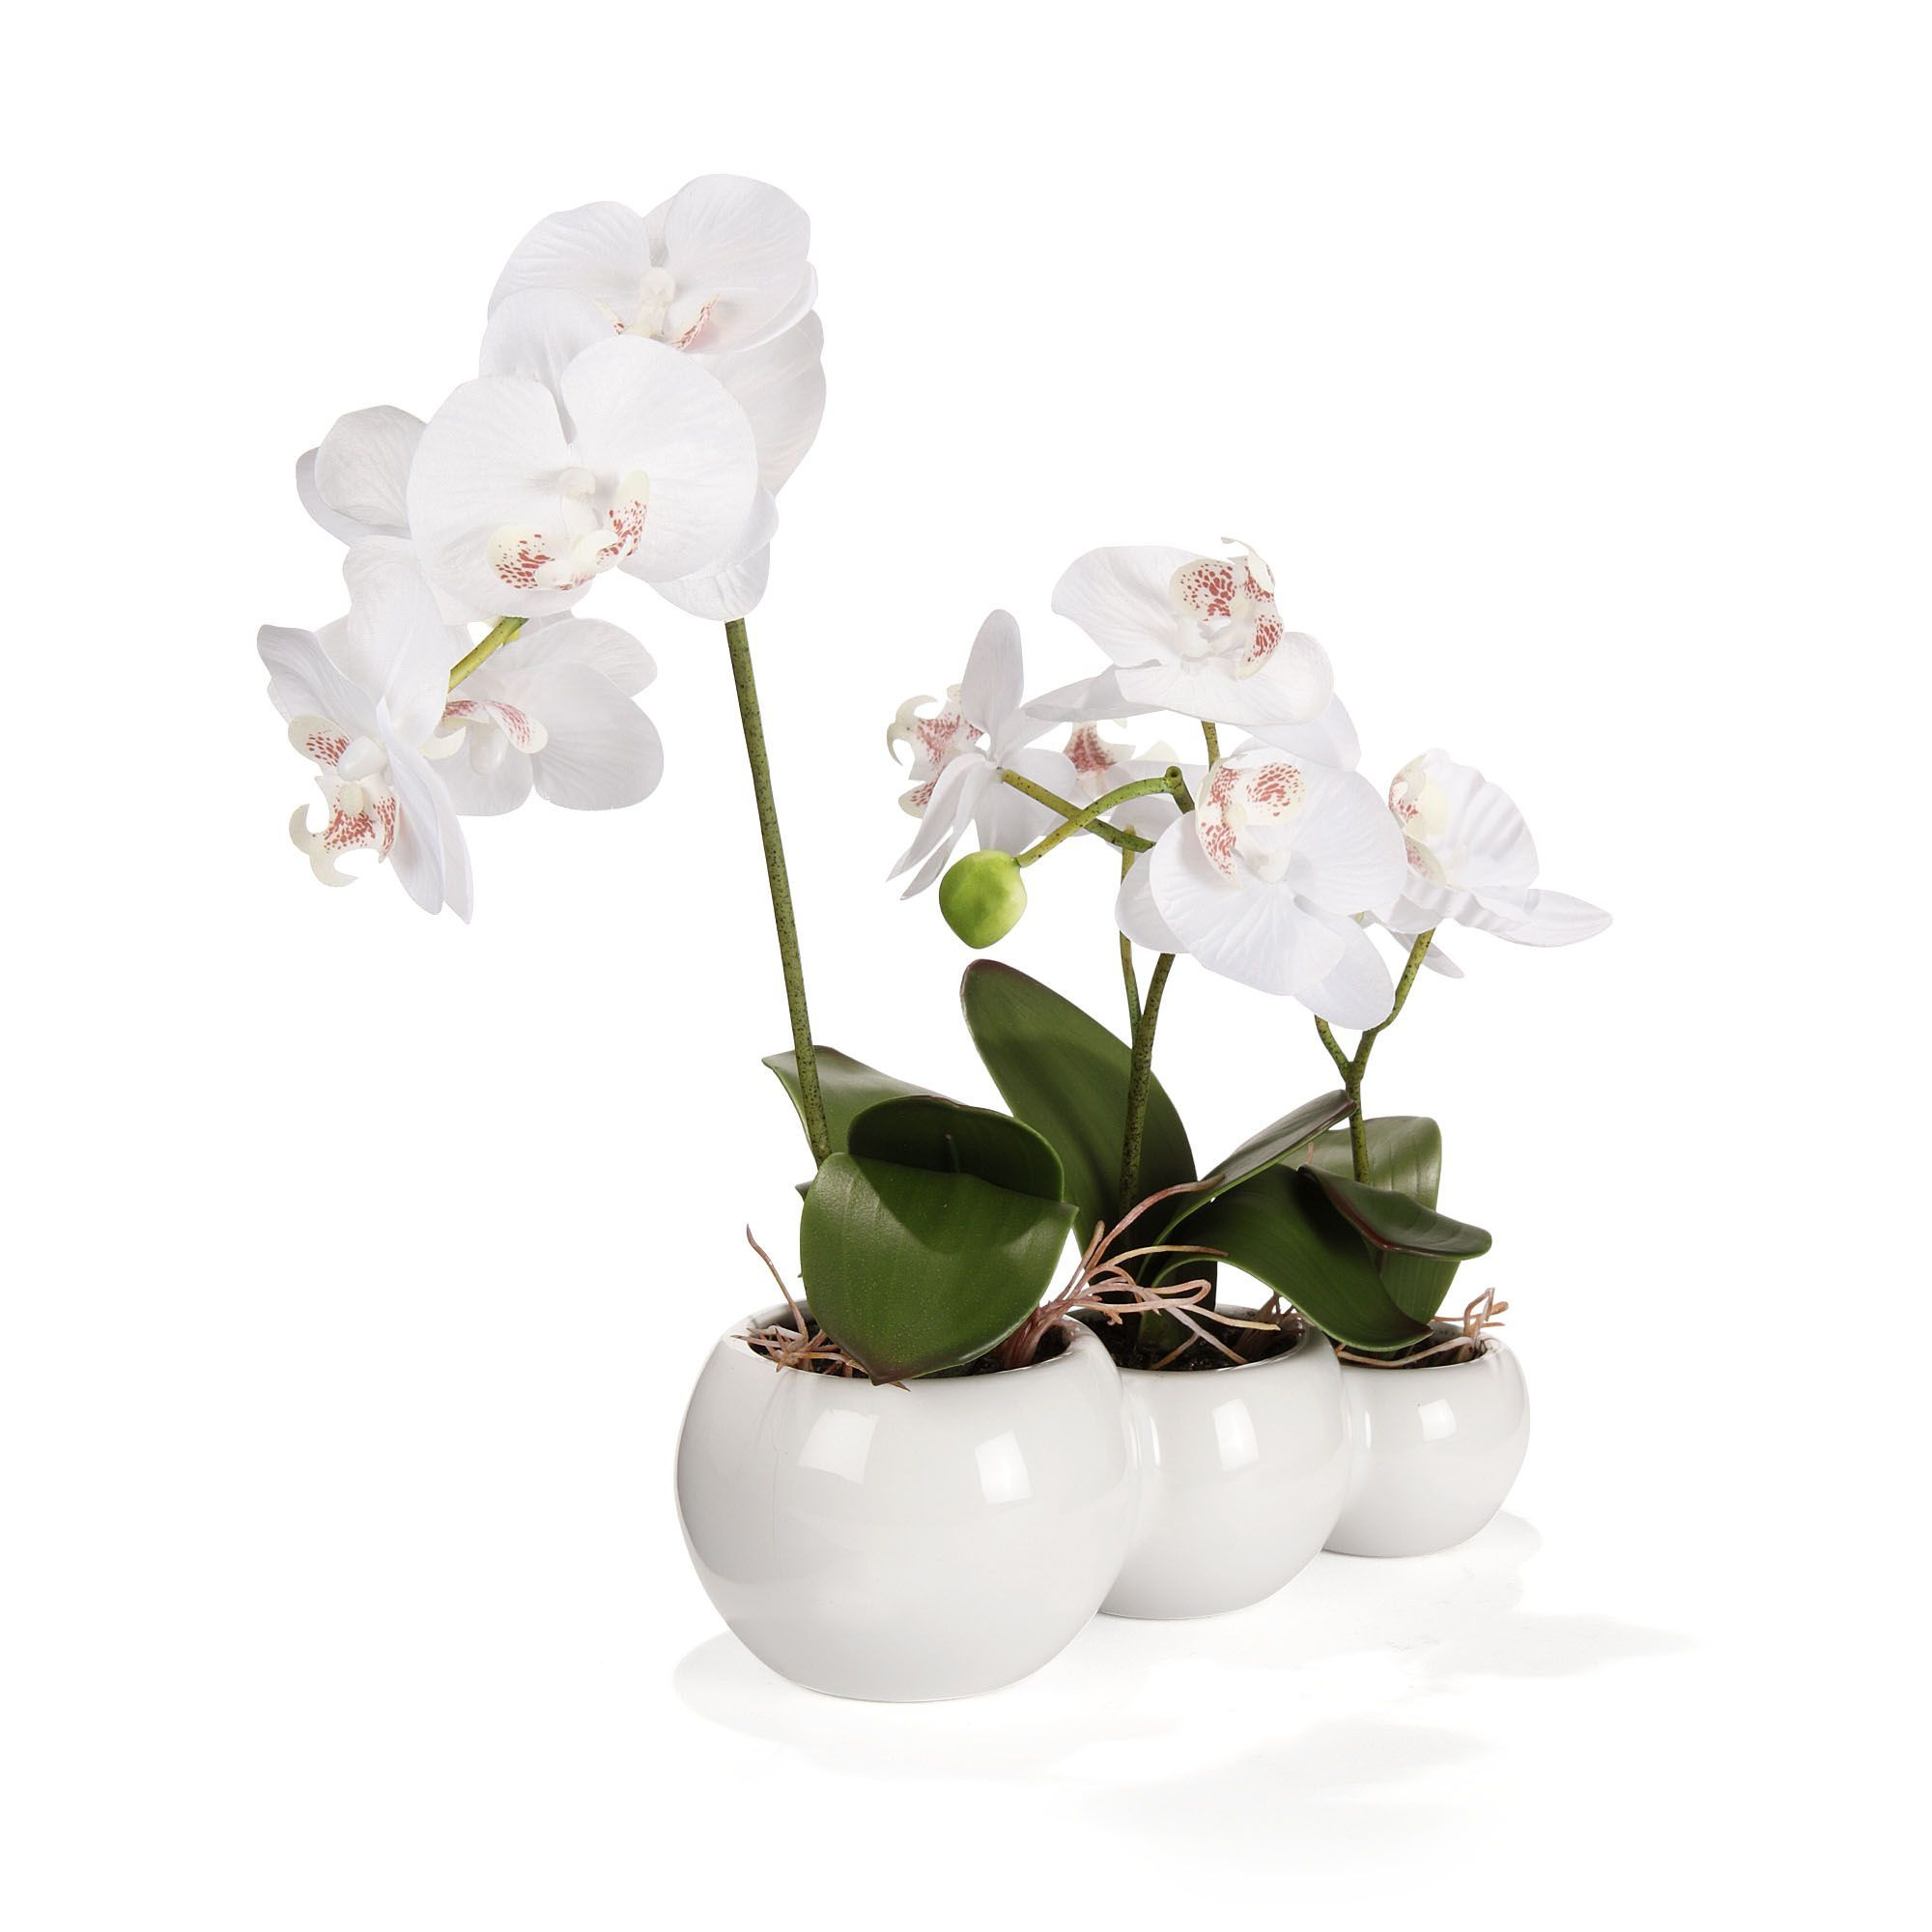 Orchid e artificielle 3 branches blanc orchid e les for Objets decoratifs salon